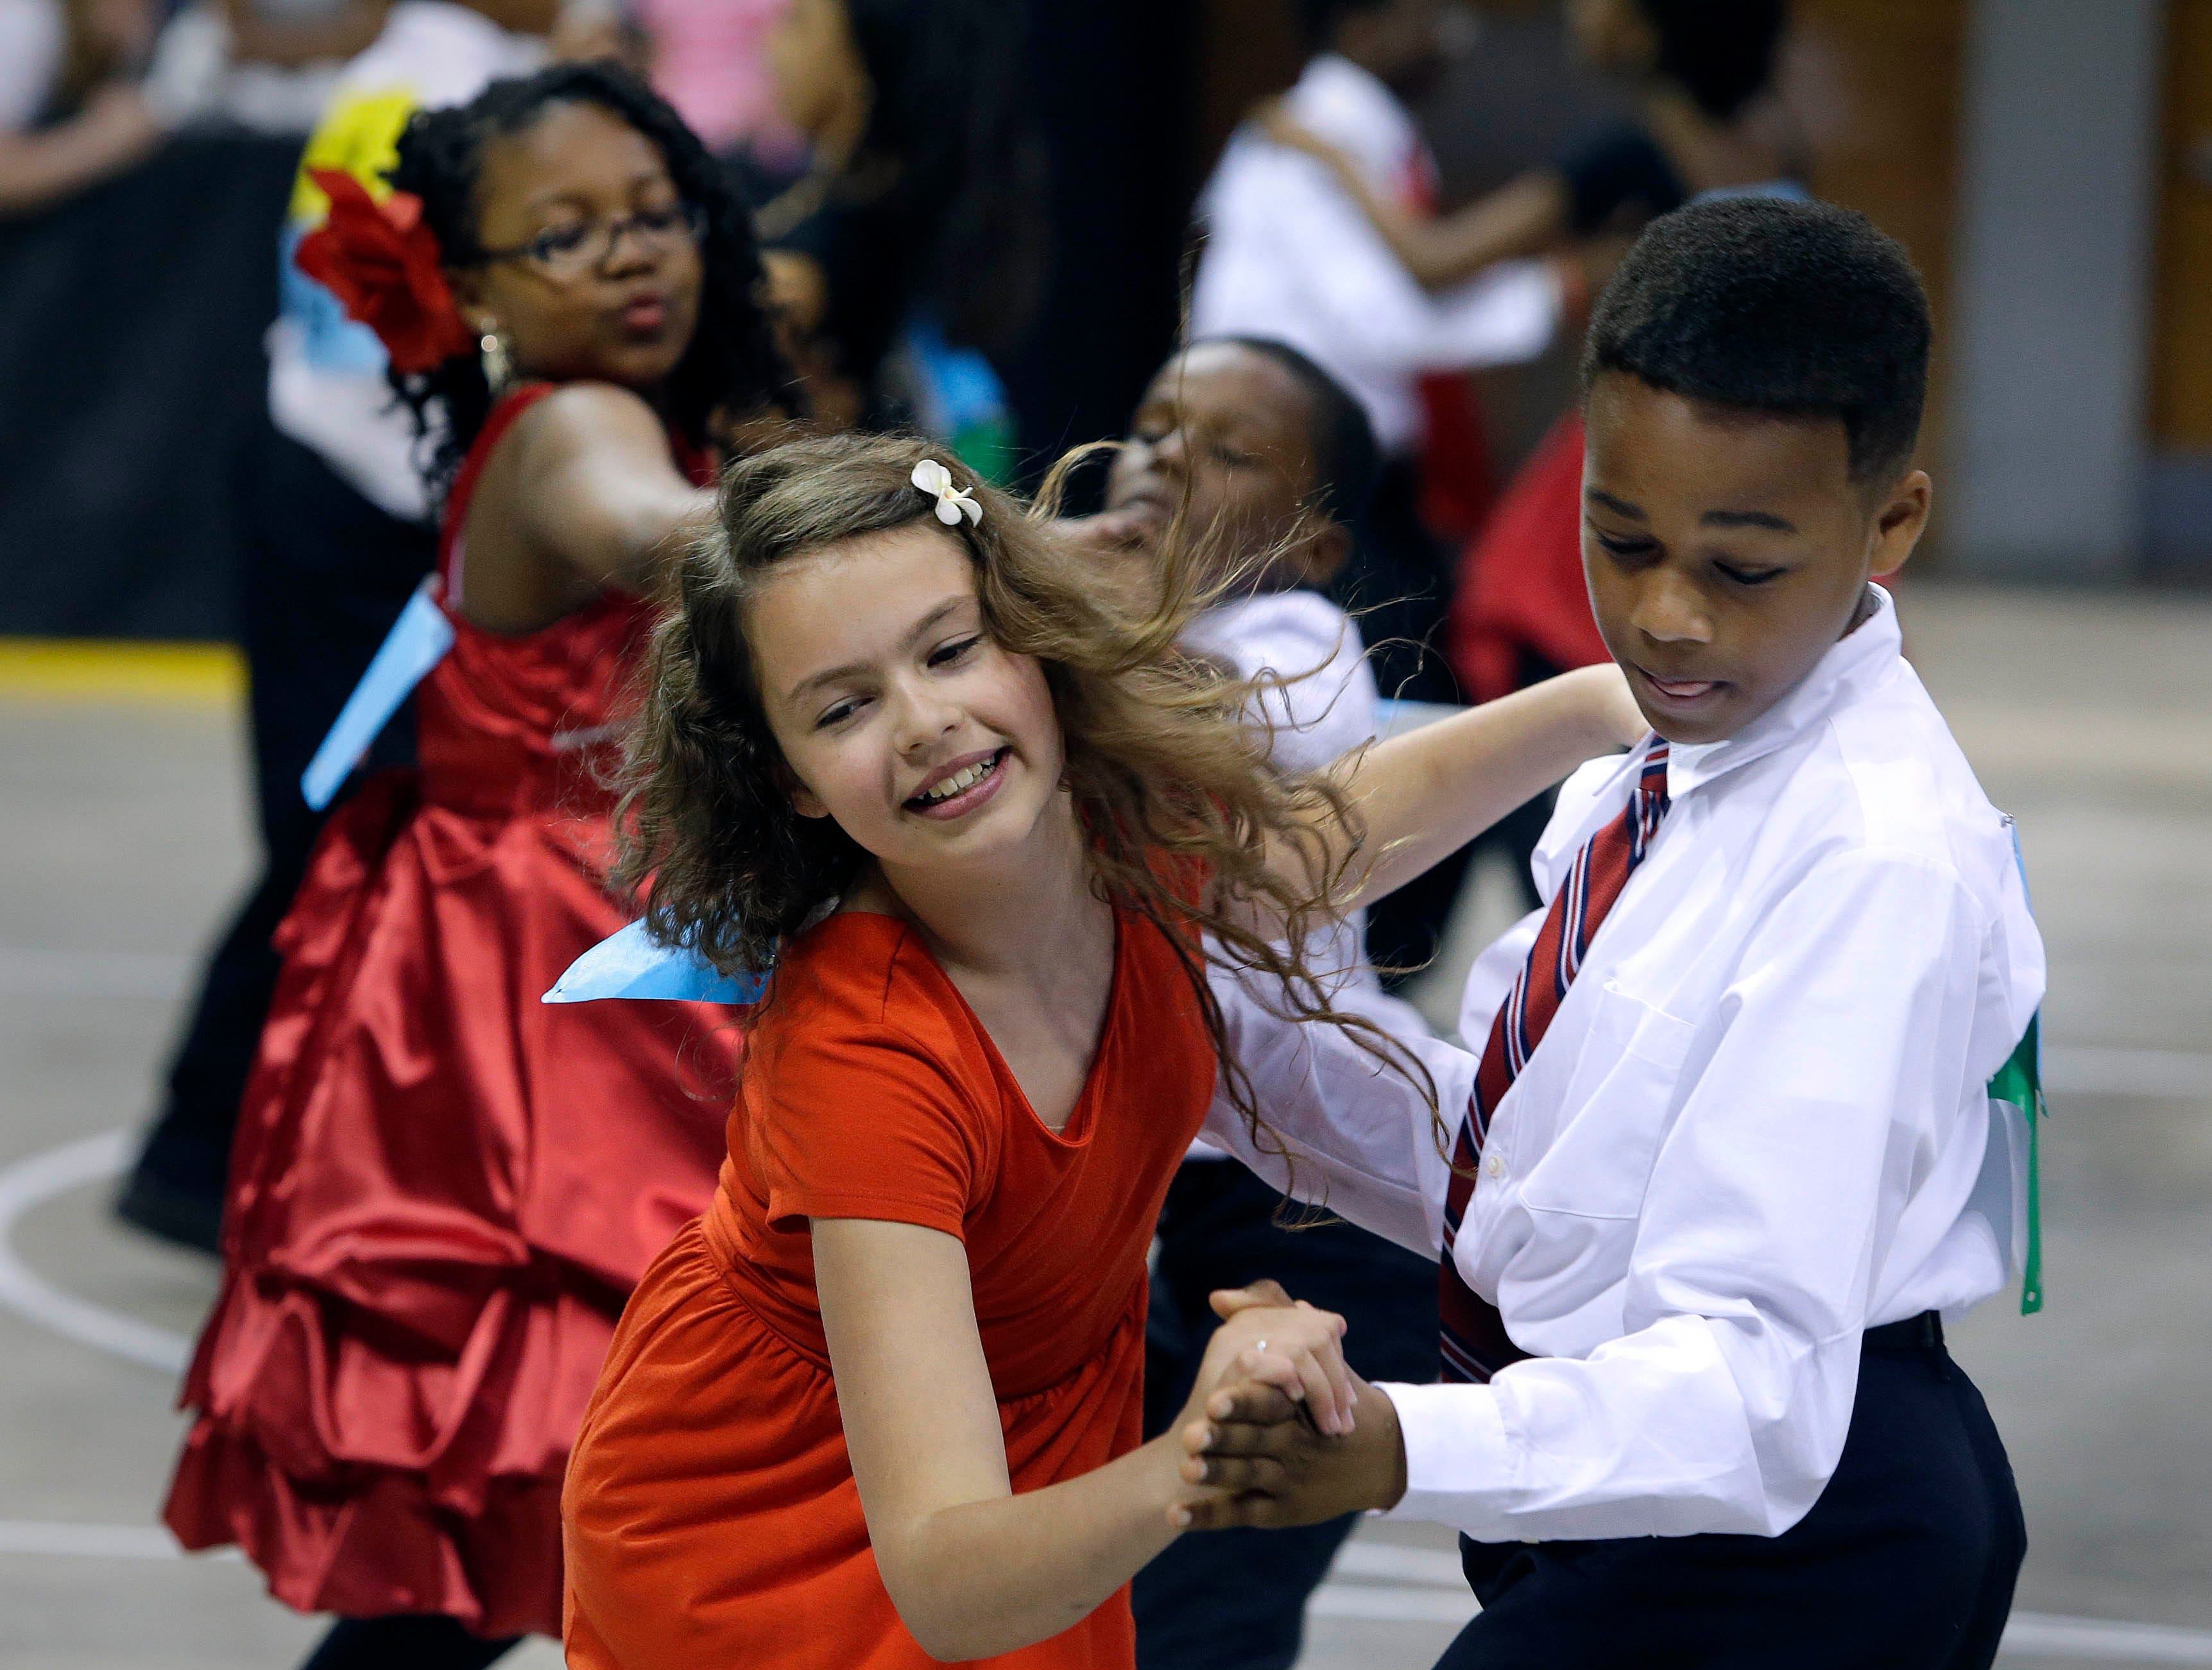 2015: Sophia Seymour and Cliffton Kincaid, 5th graders at the French Immersion School, perform the tango. About 2,000 local students from 45 area schools performed and competed in the annual Mad Hot Ballroom and Tap competition at the Bradley Center.